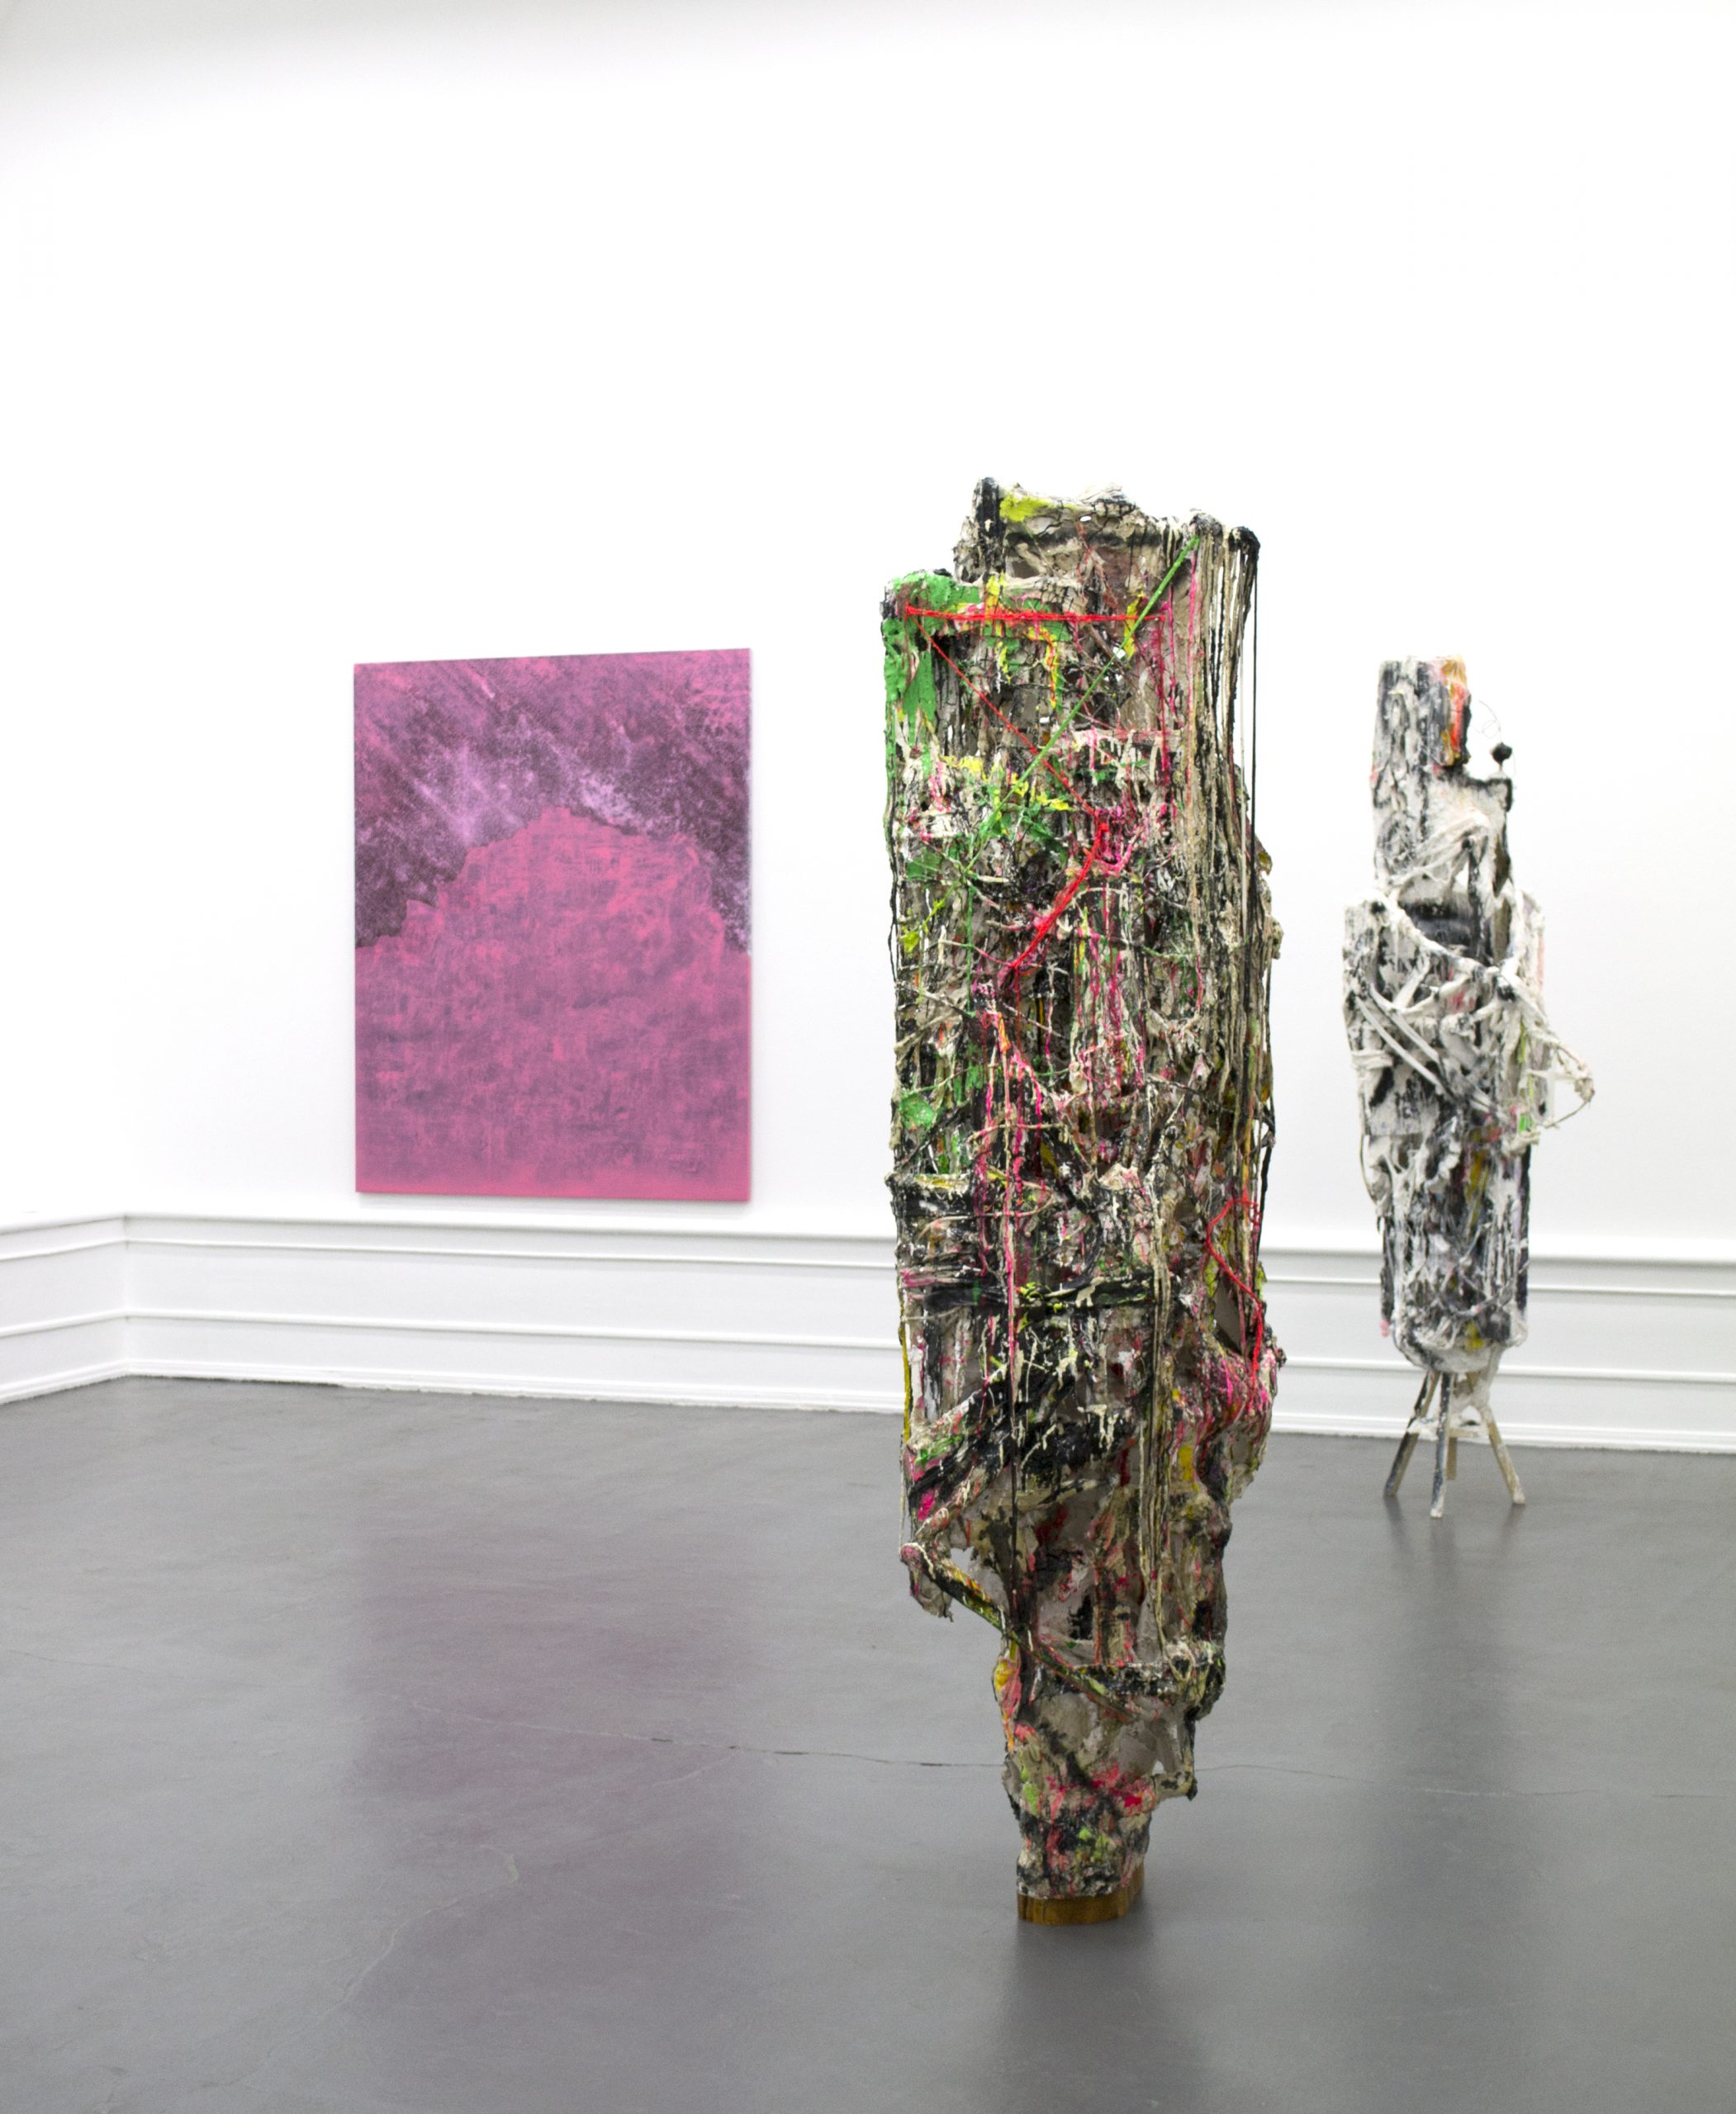 Jakob Westberg  (Sculpture), Lisa D Manner (painting). Installation view: Sculpture and Painting in Dialogue, 2020